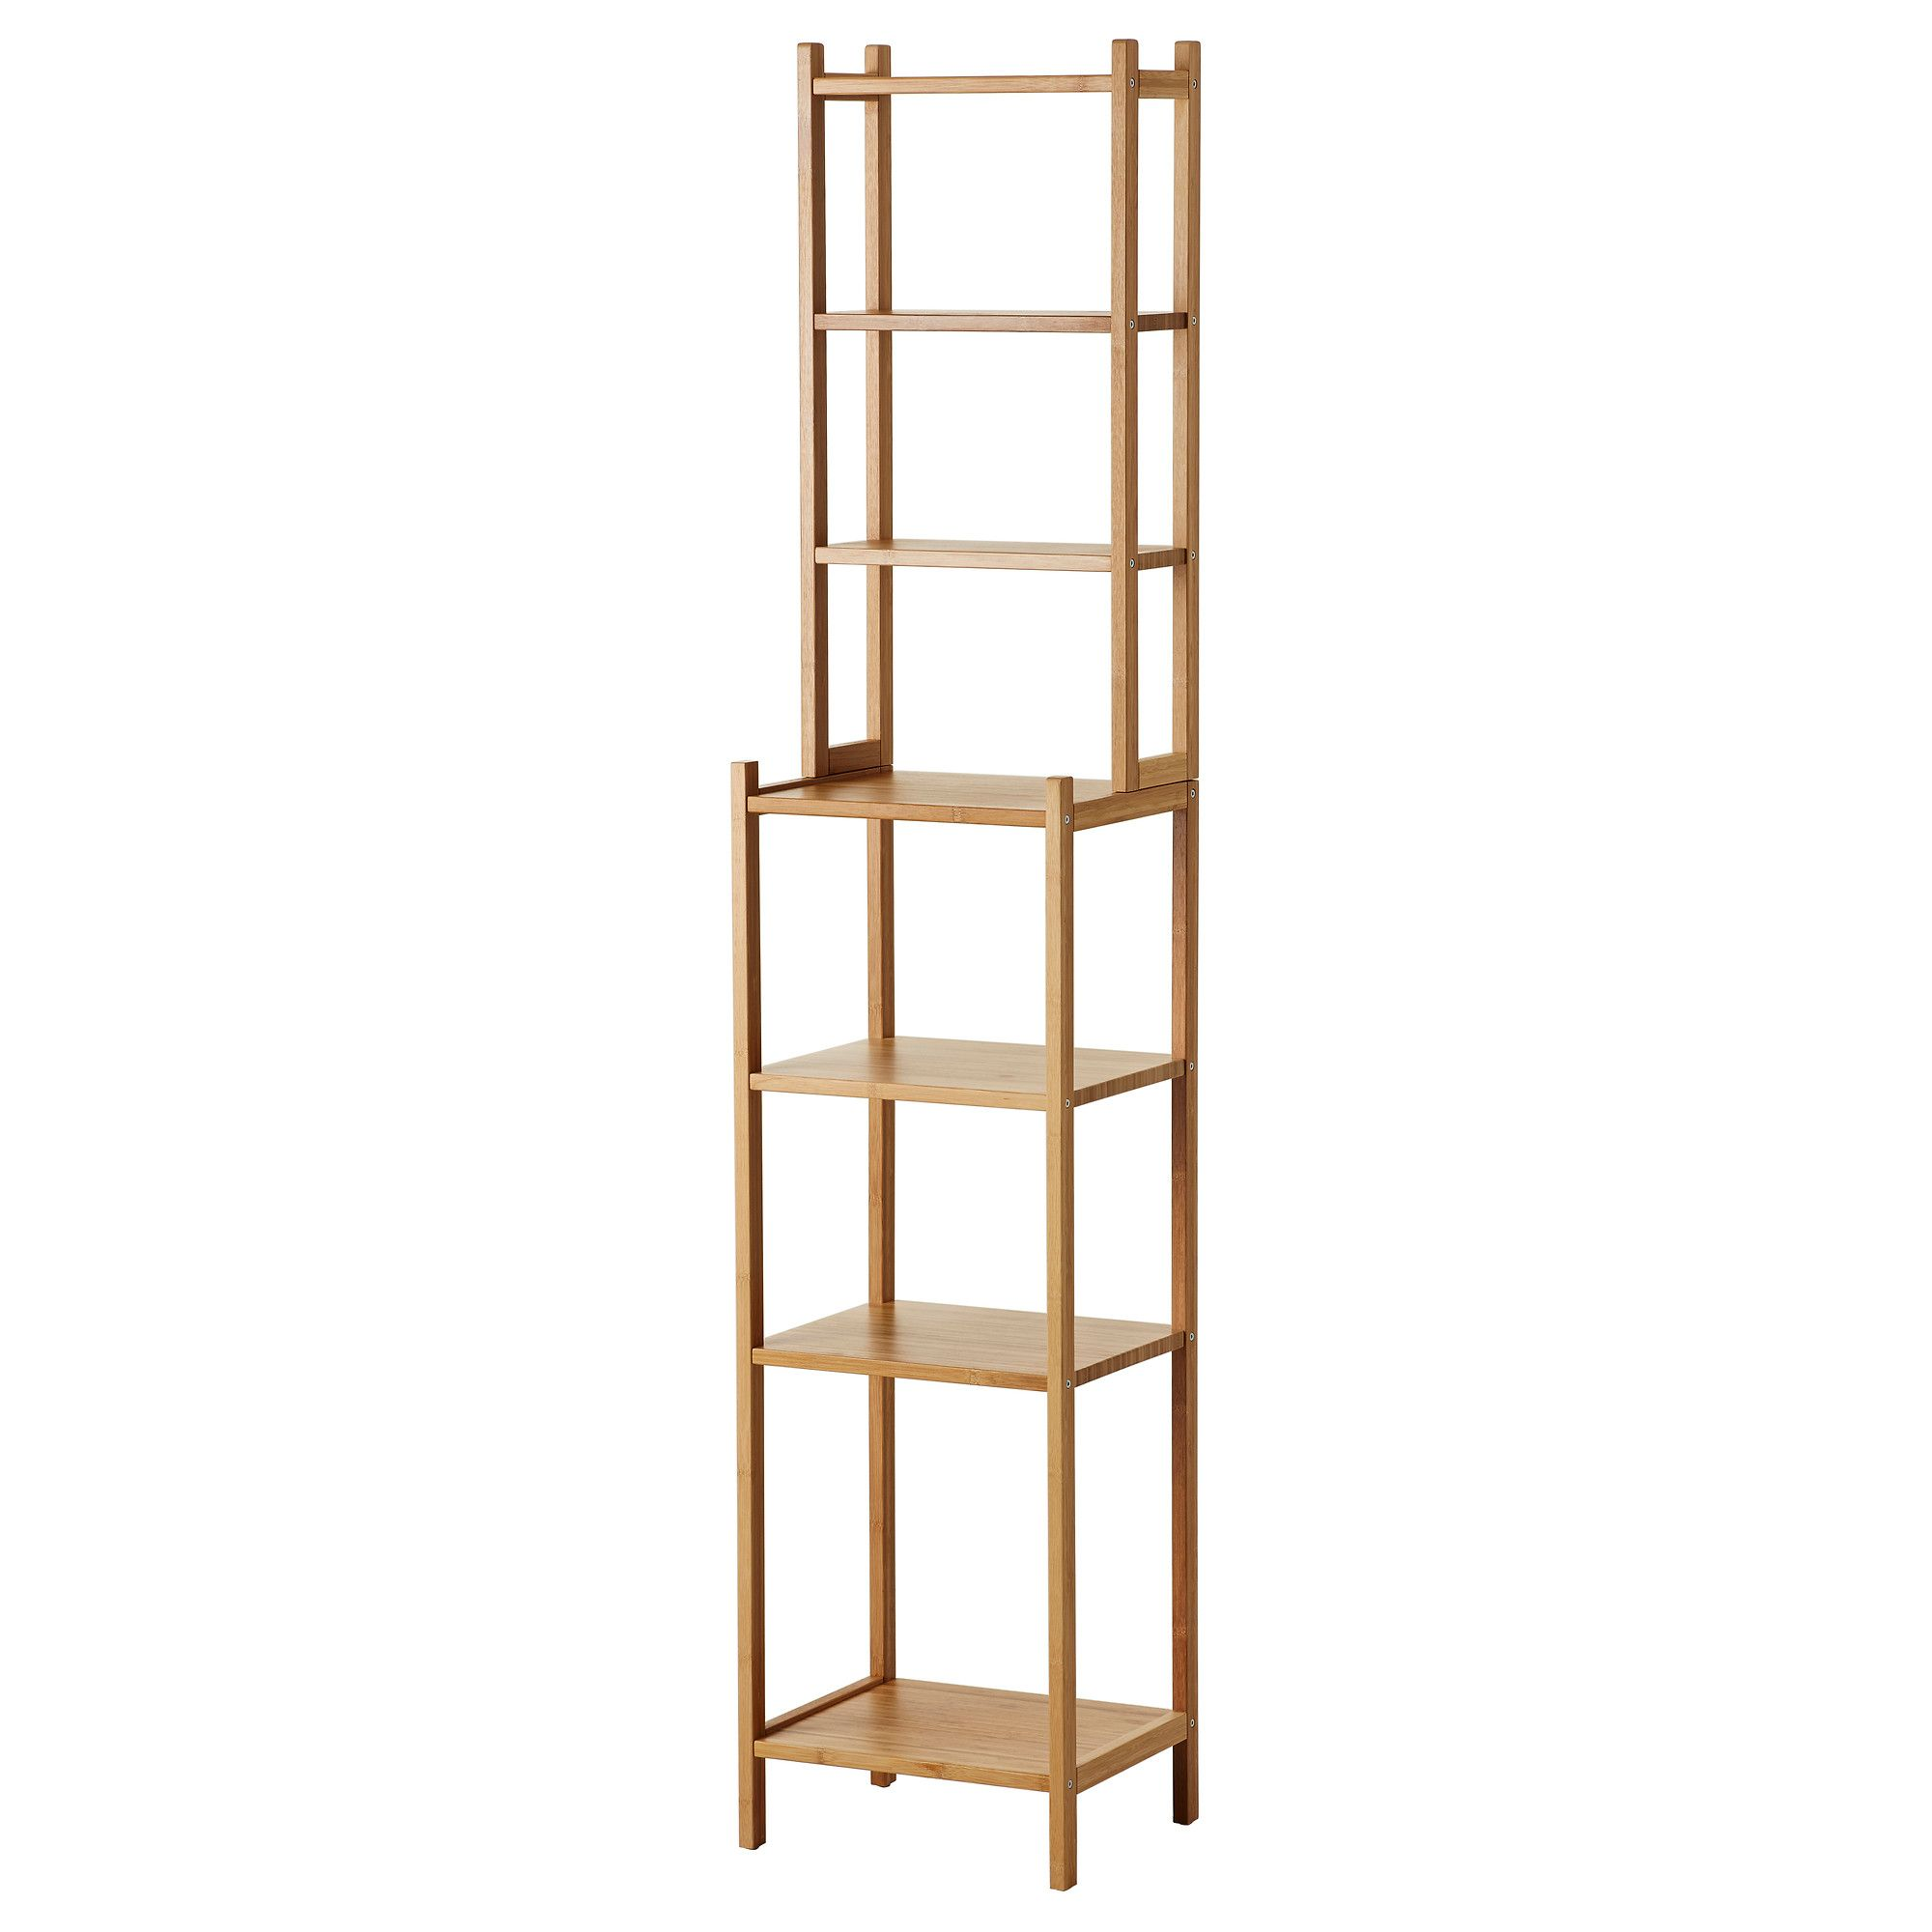 IKEA   RÅGRUND, Shelving Unit,   Perfect In A Small Bathroom.Bamboo Is A  Hardwearing Natural Material.